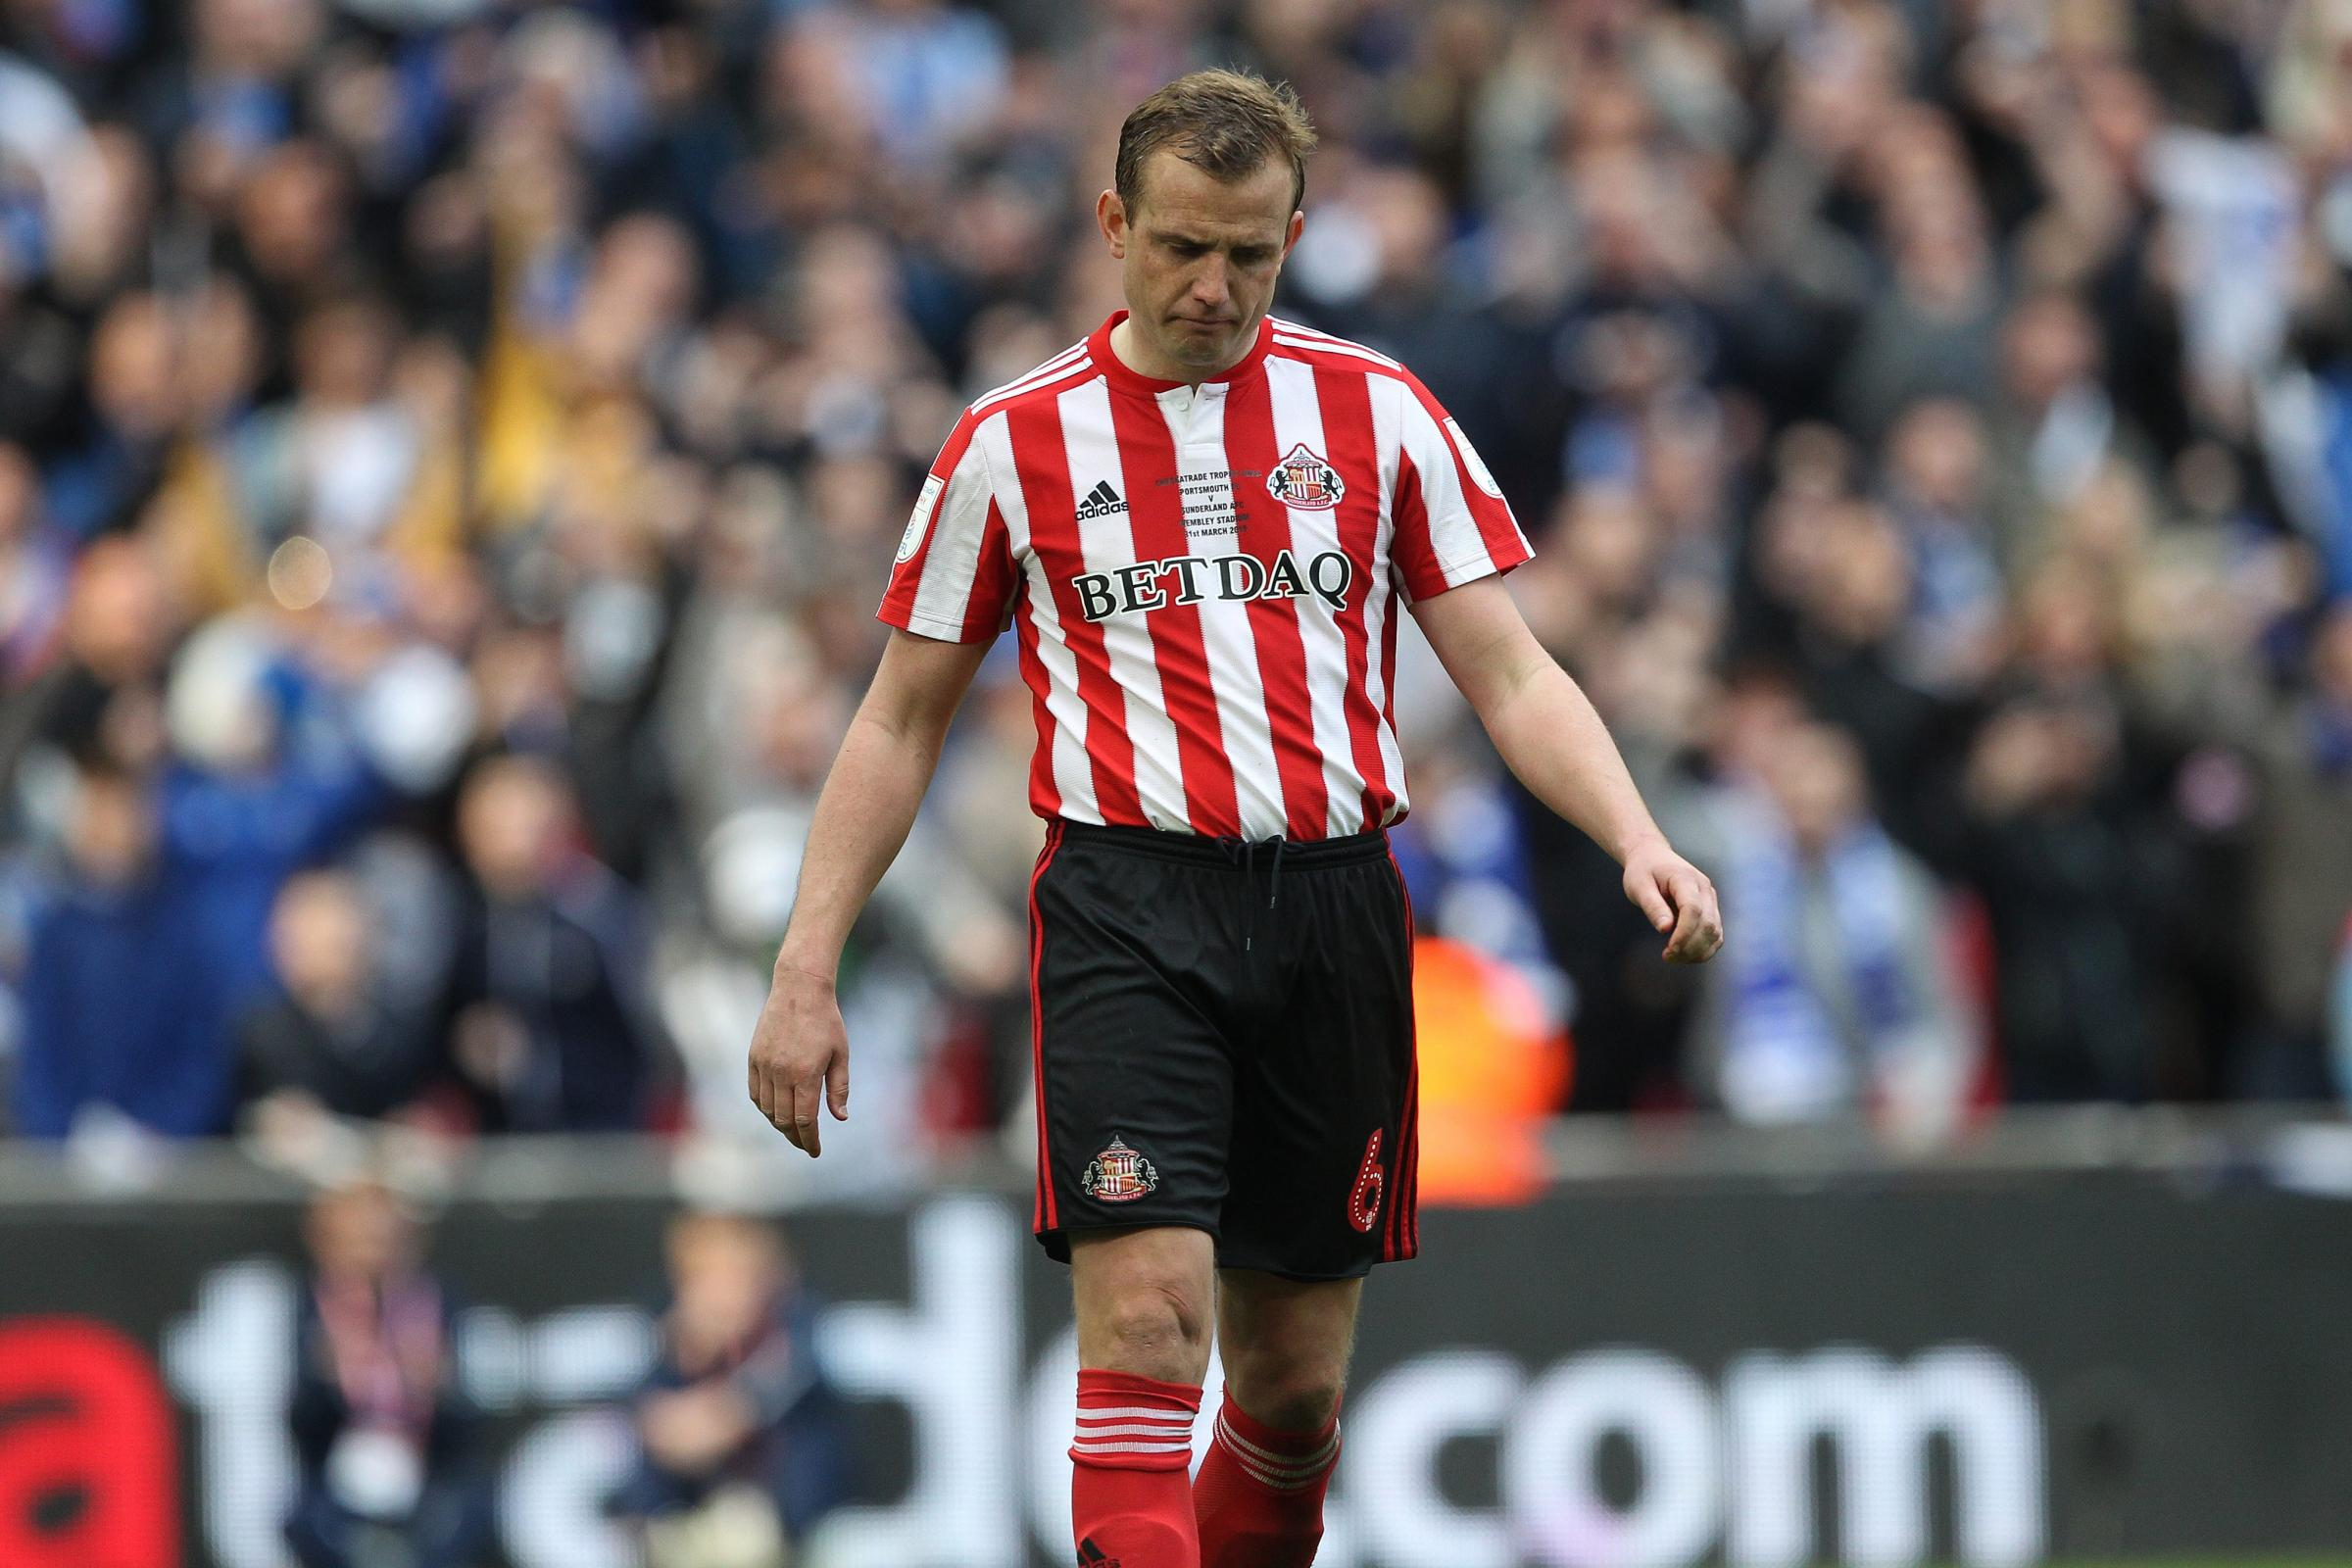 Lee Cattermole, who was an unused substitute last Saturday, has had a full week's training and is expected to return to the starting line-up in two days' time. Picture: MI News and Sport